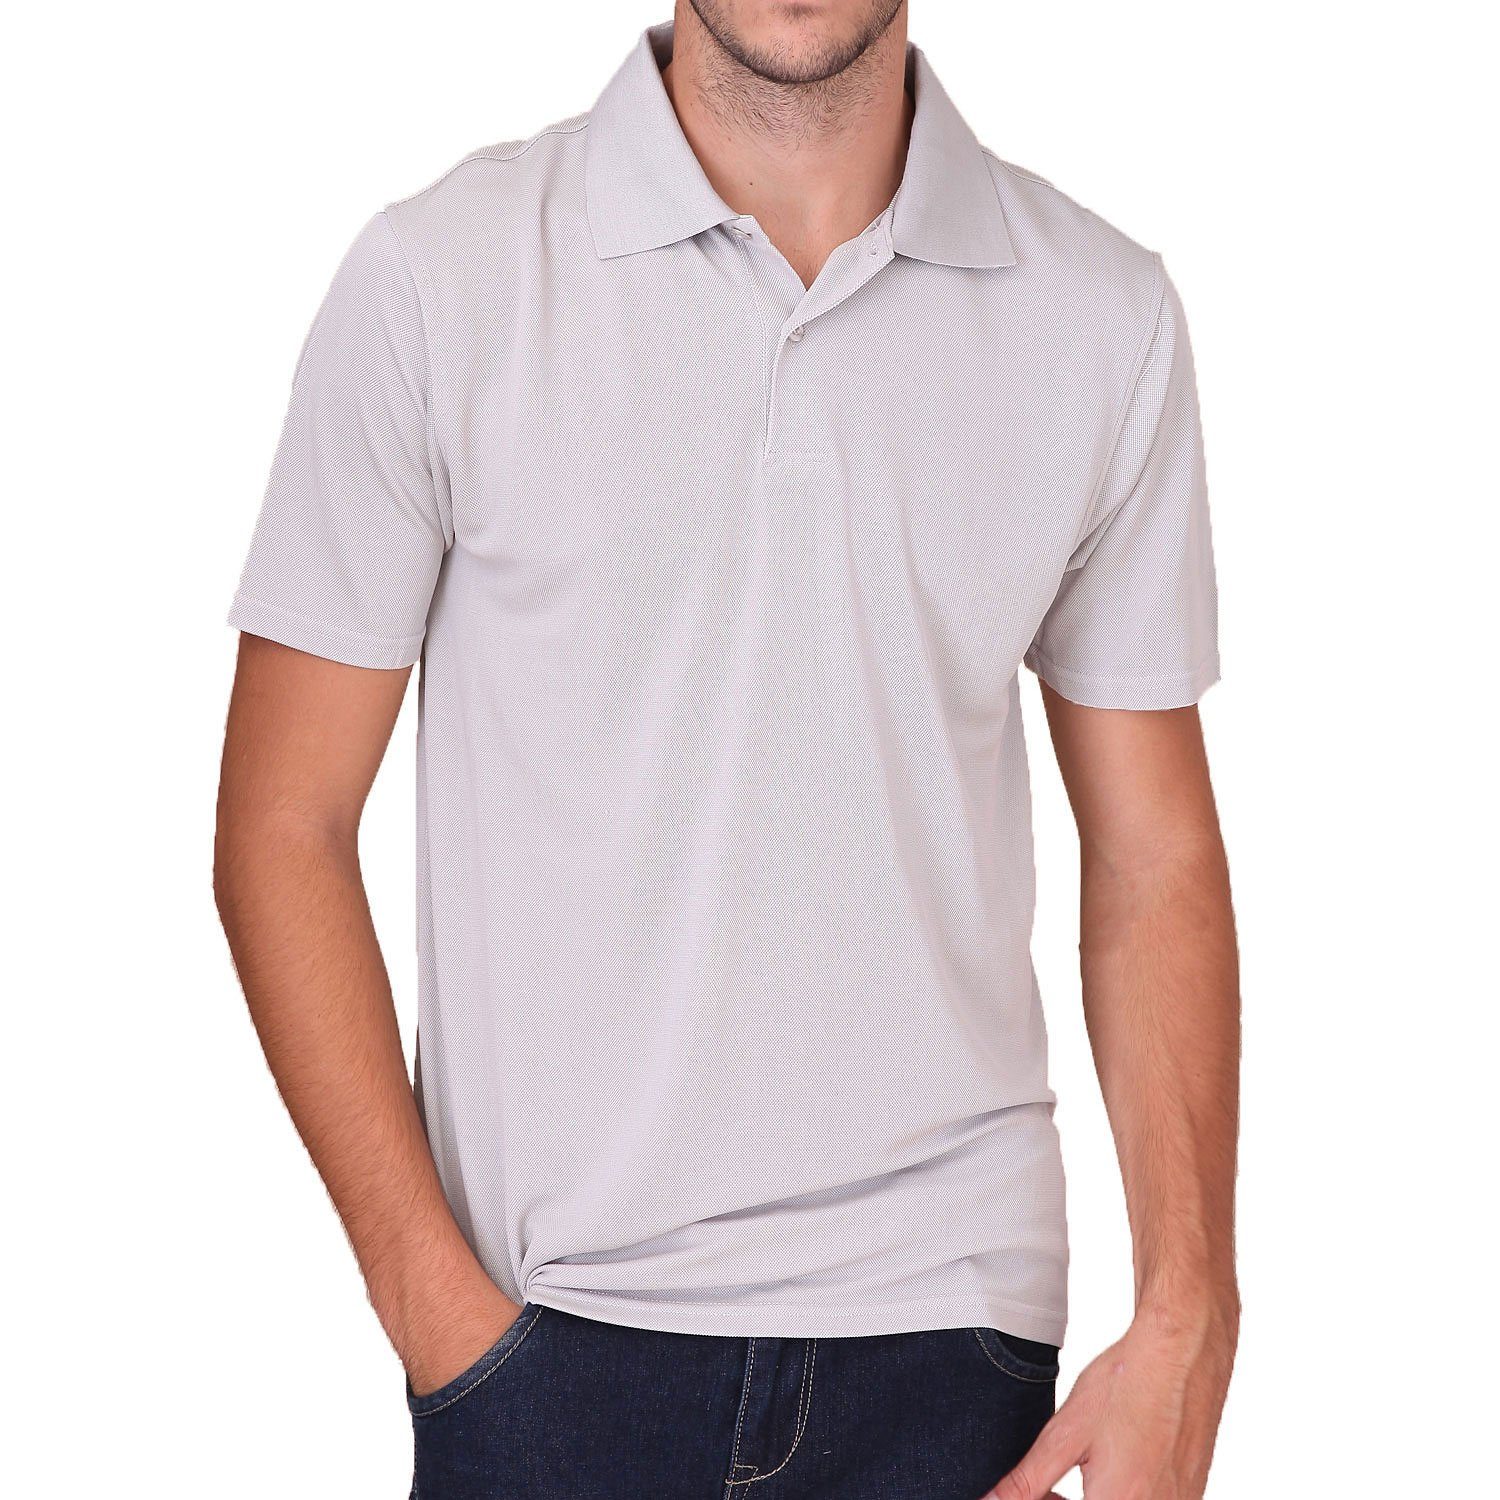 Paradise Silk Pure Silk Knit Mens Polo T-Shirt Turndown Collar Short Sleeves Solid US S M L SKMPT